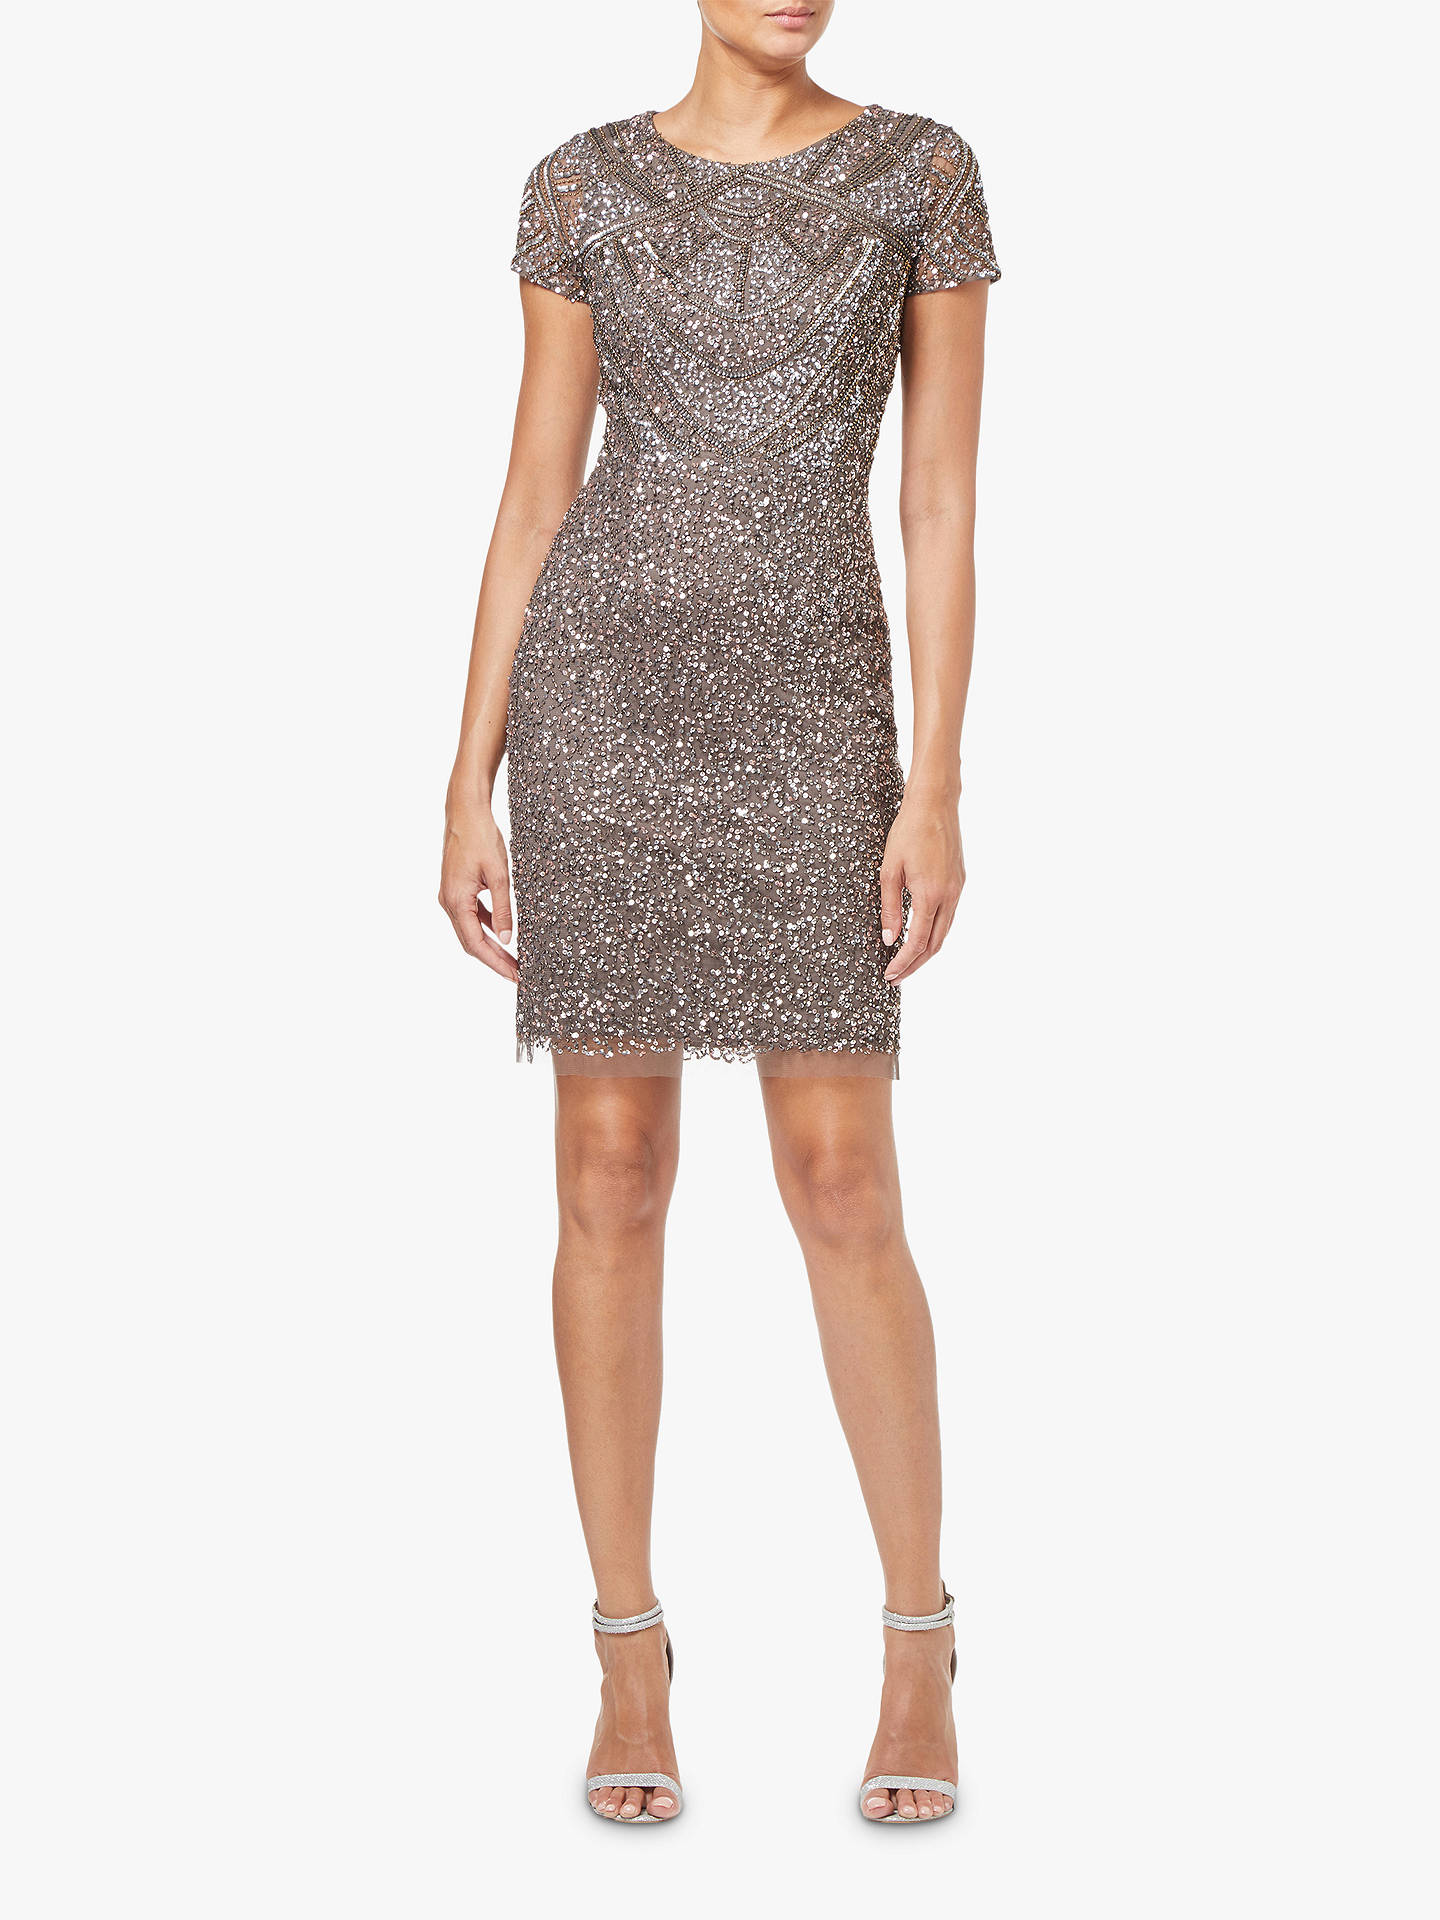 Buy Adrianna Papell Short Sleeve Beaded Cocktail Dress, Lead, 8 Online at johnlewis.com